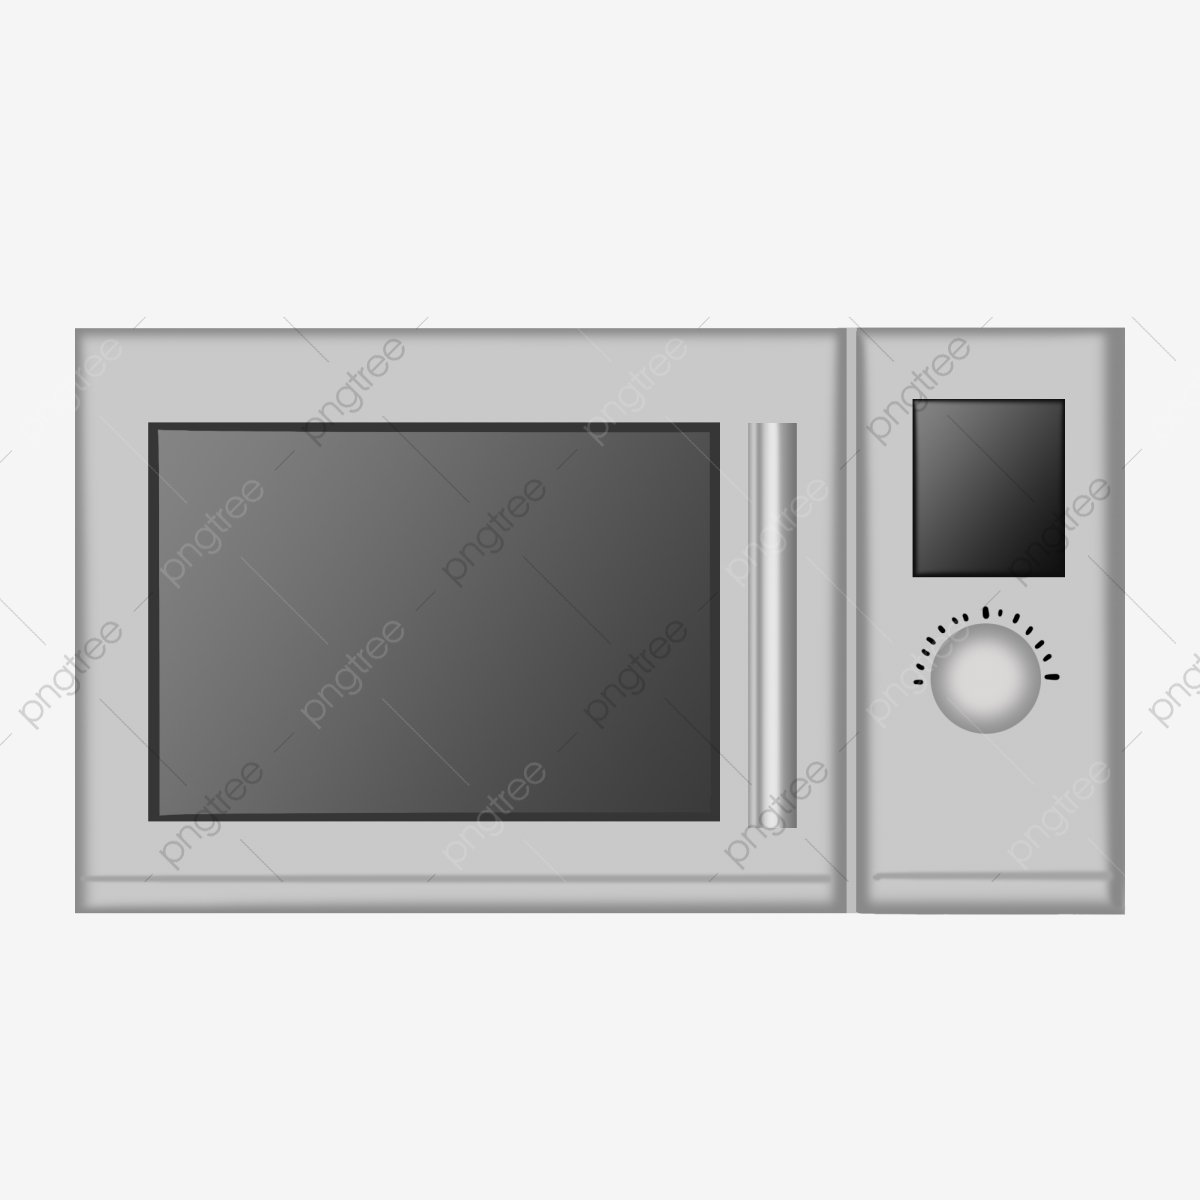 Microwave Clipart File Microwave File Transparent Free